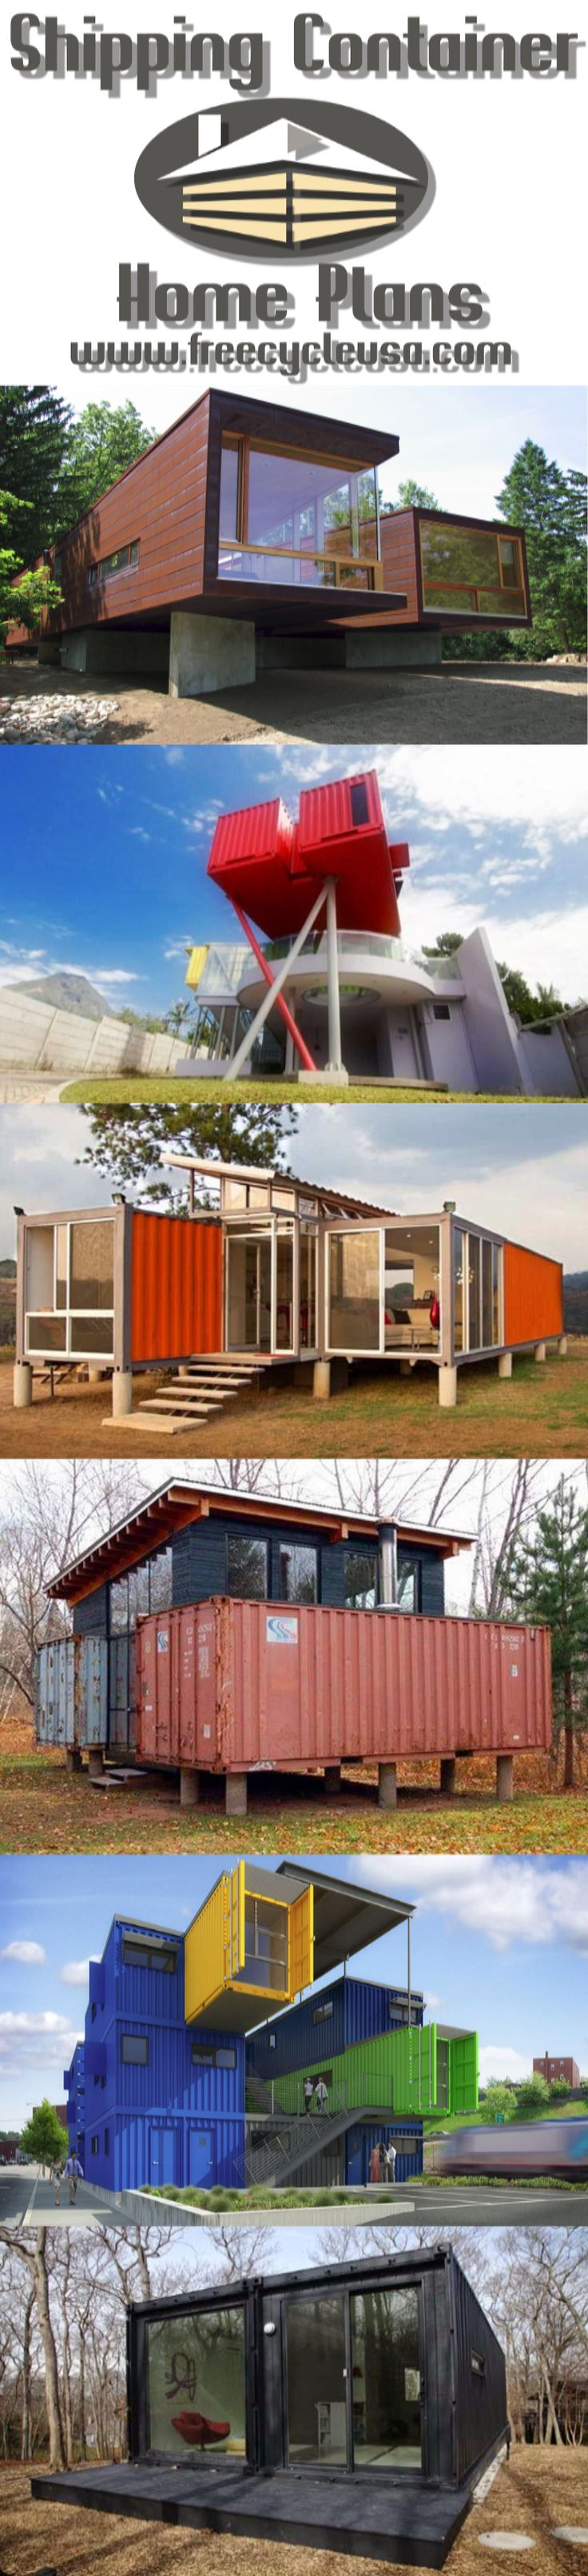 961 best cargo container homes images on pinterest | shipping